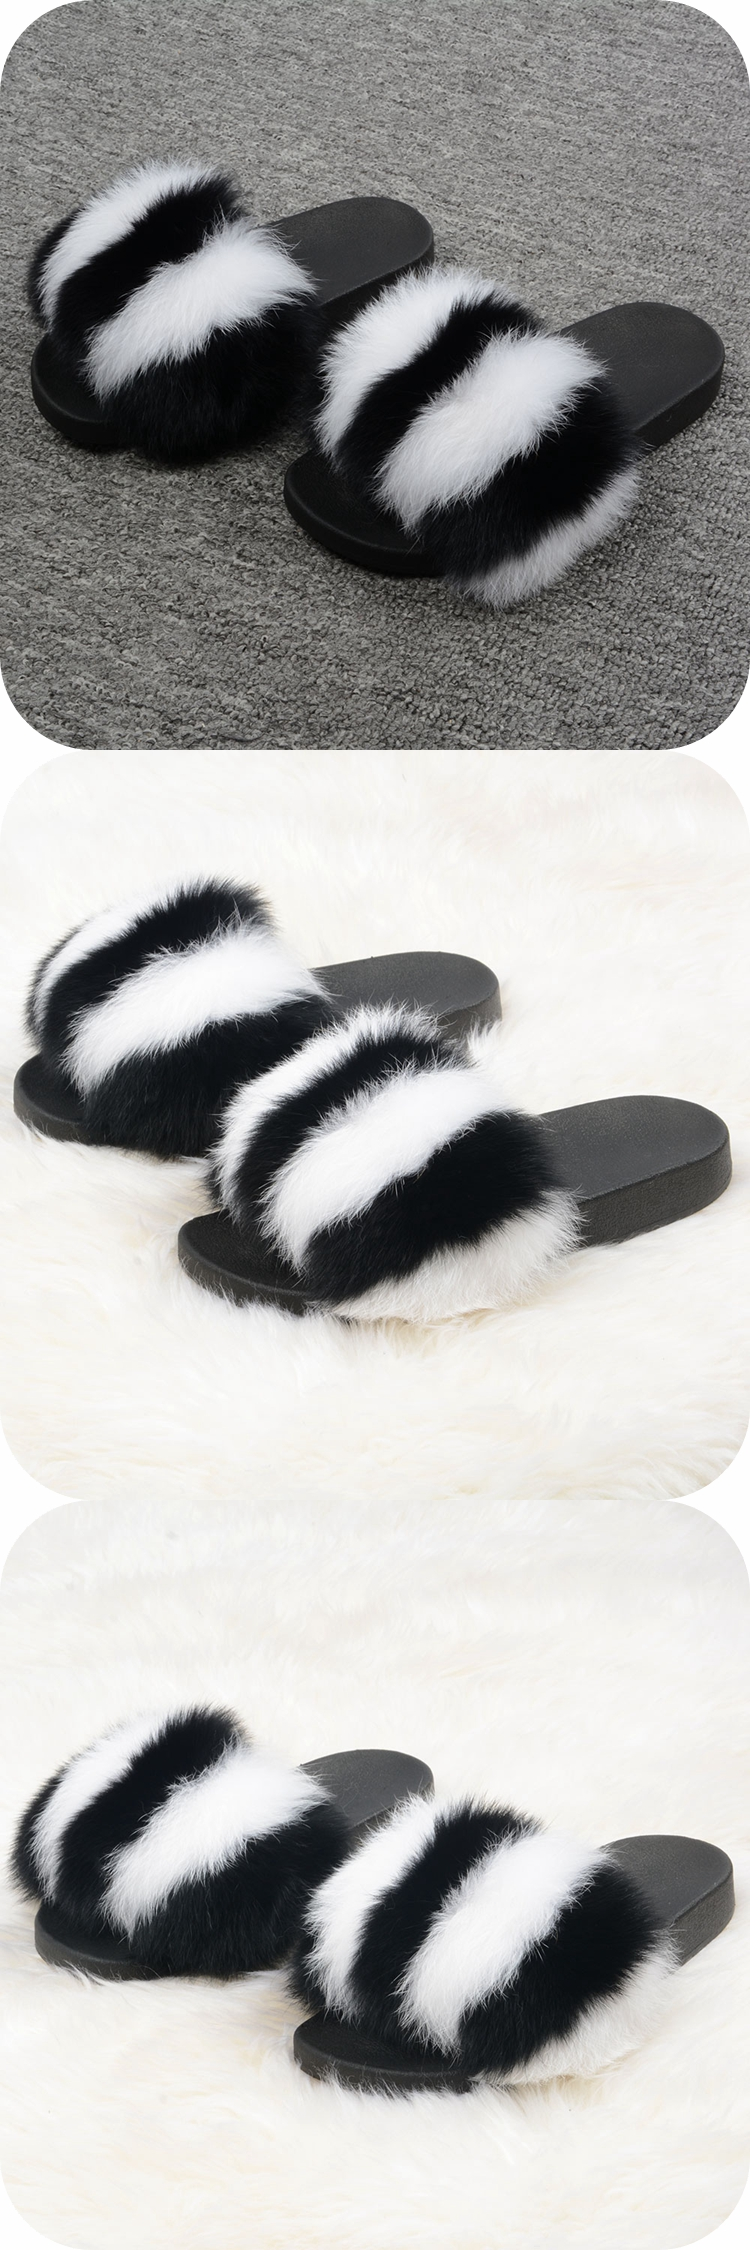 Quality Primacy Black And White Stripes Slides Real Fox Slippers Soft Cozy Fur Sandals